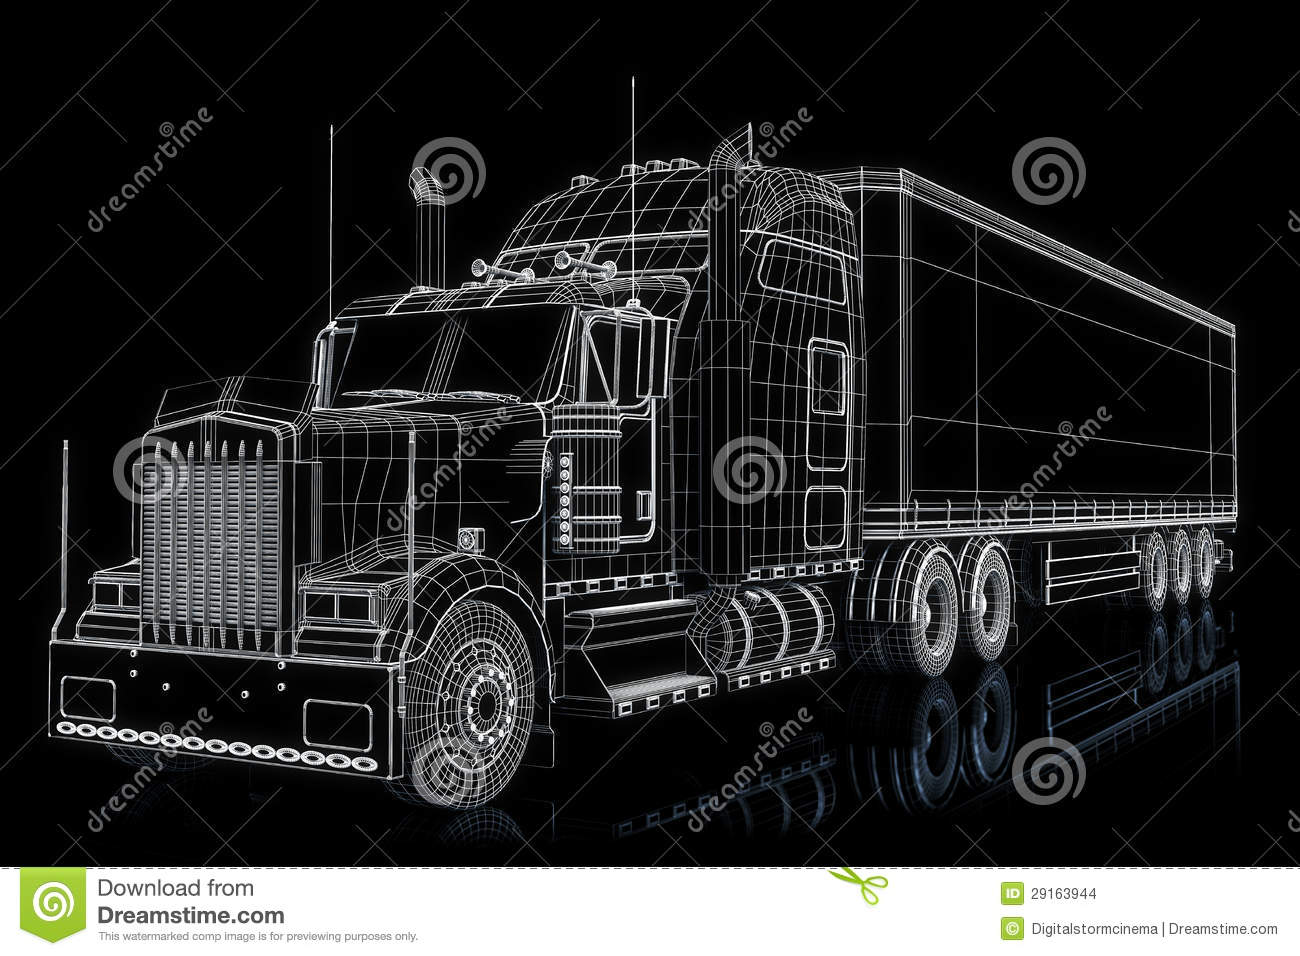 LDS N 1 P A 37 18062717484510419600 besides Road Transport Design Element furthermore Tractor Trailer Dimensions furthermore Watch further Flatbed Tilt Trailer. on semi trailor